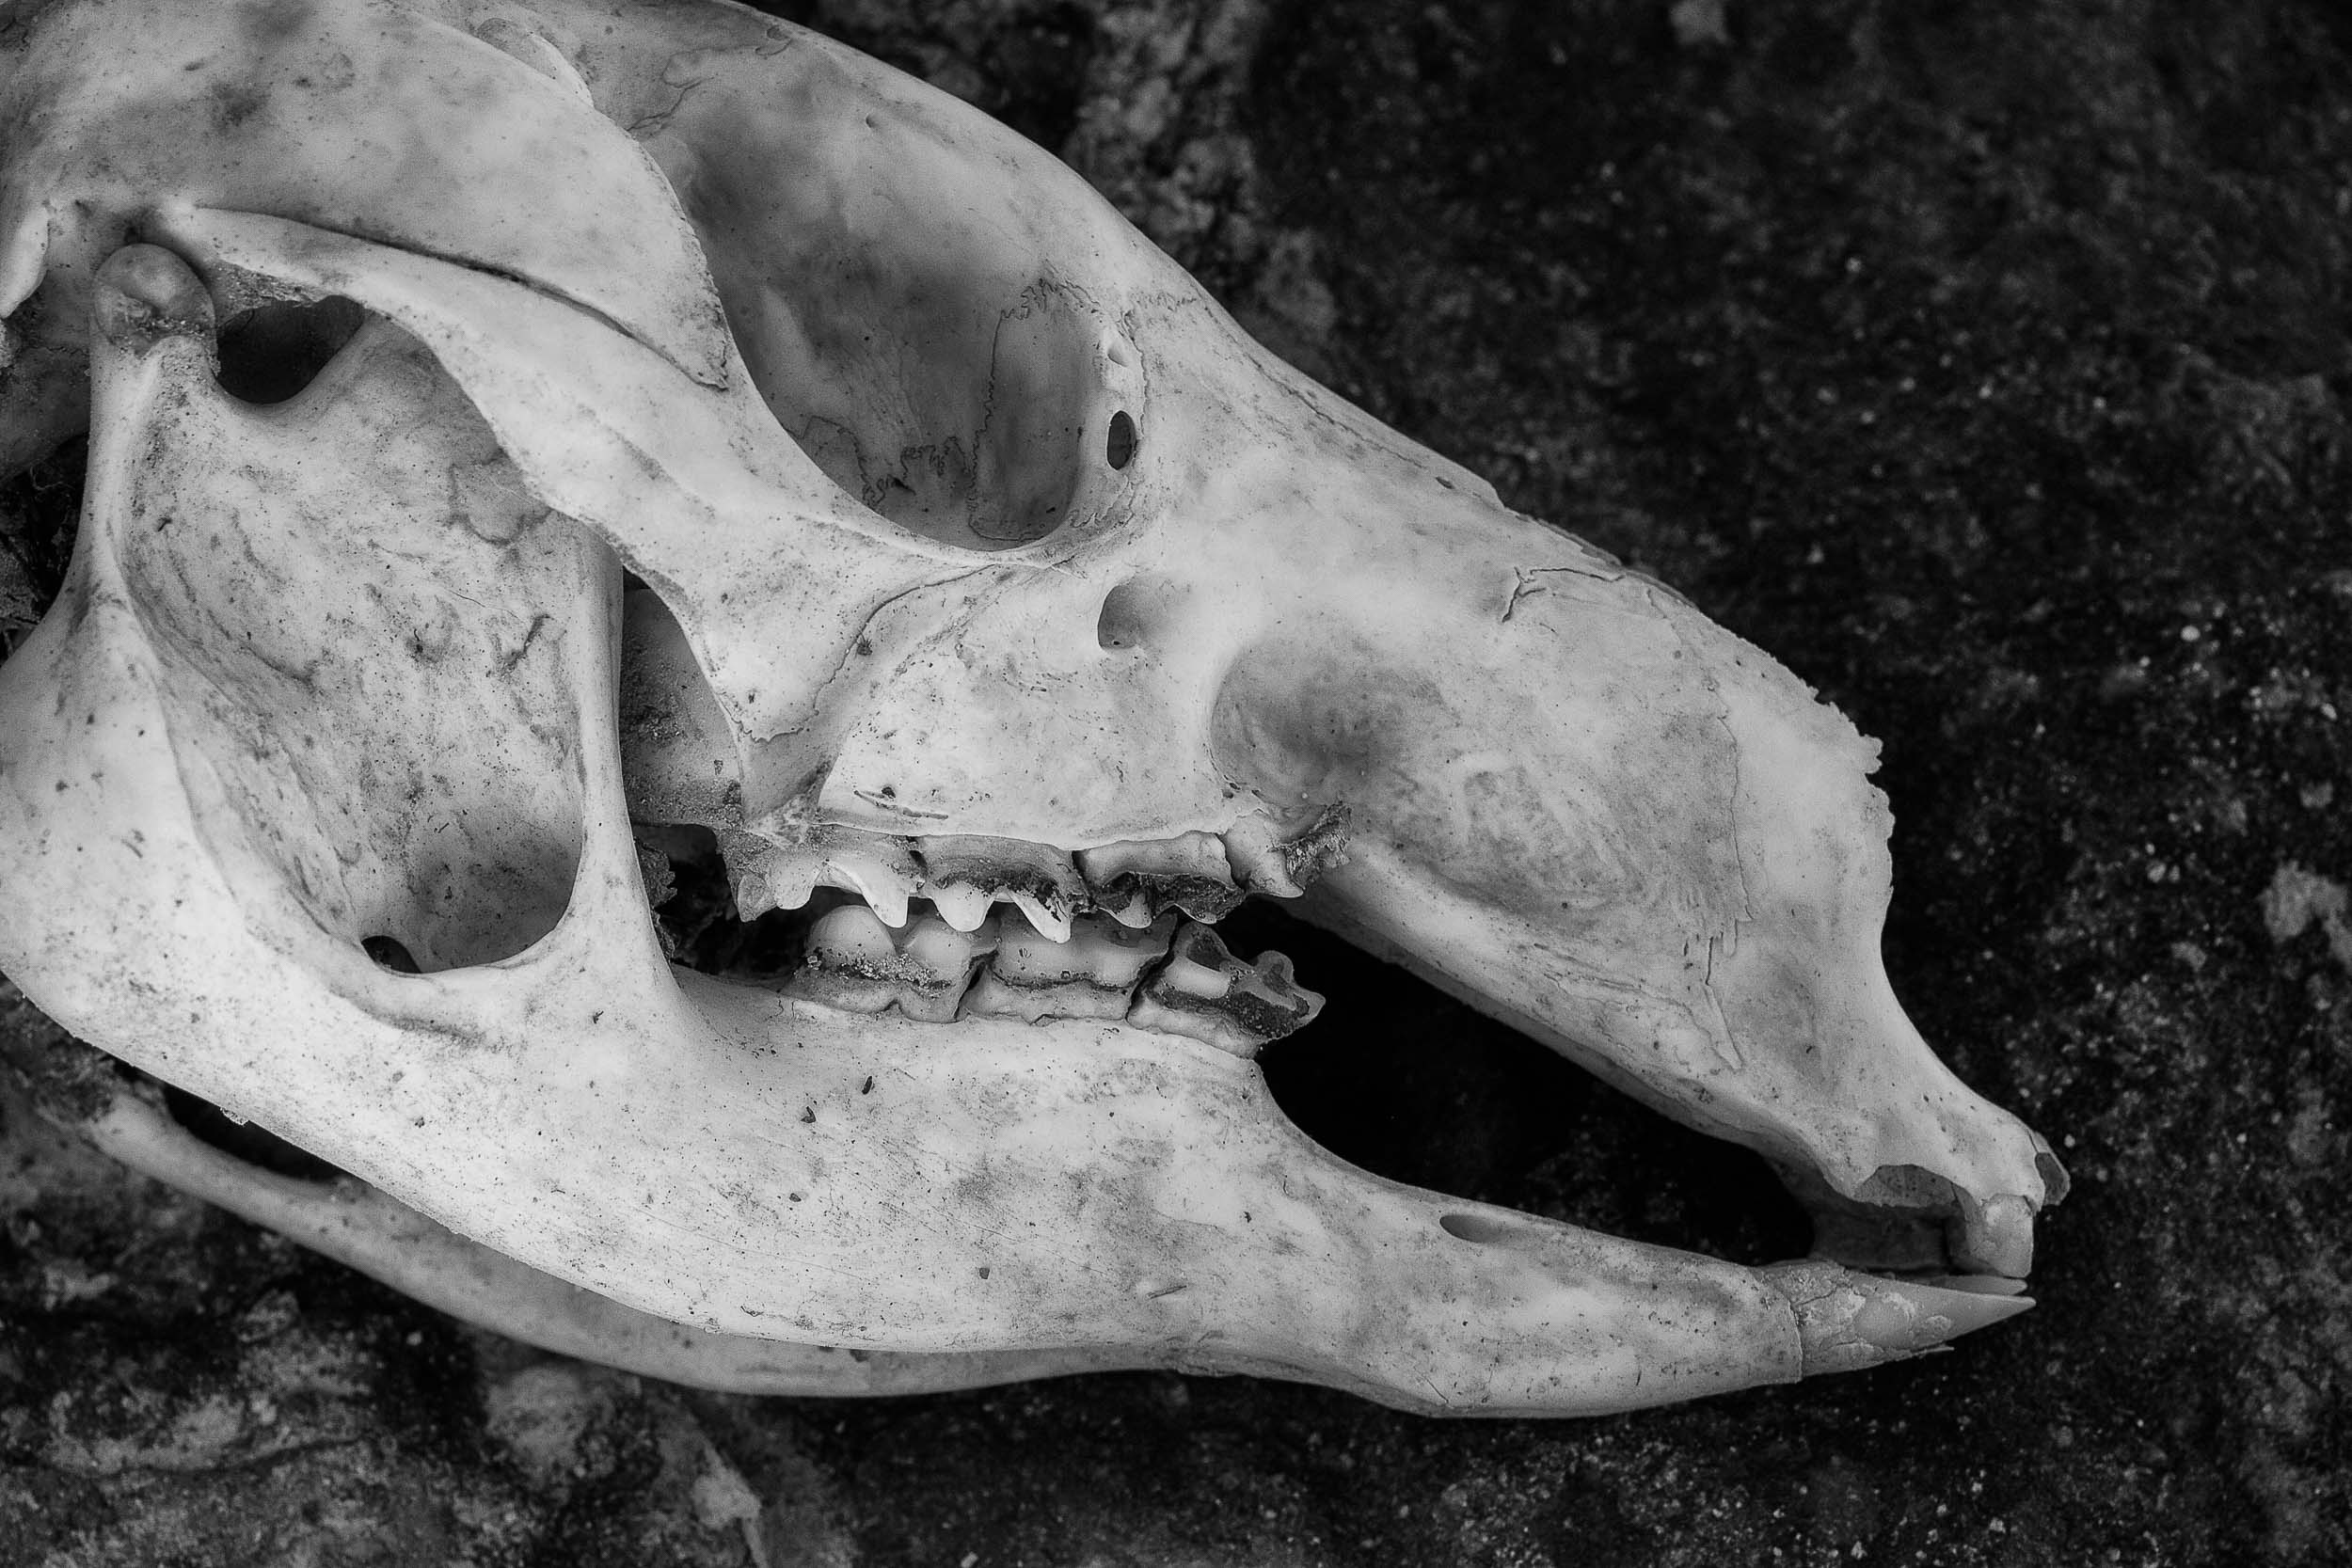 I photographed this    wallaby skull    in an abandoned mine near the town of    Chewton    in Victoria,    Australia   .